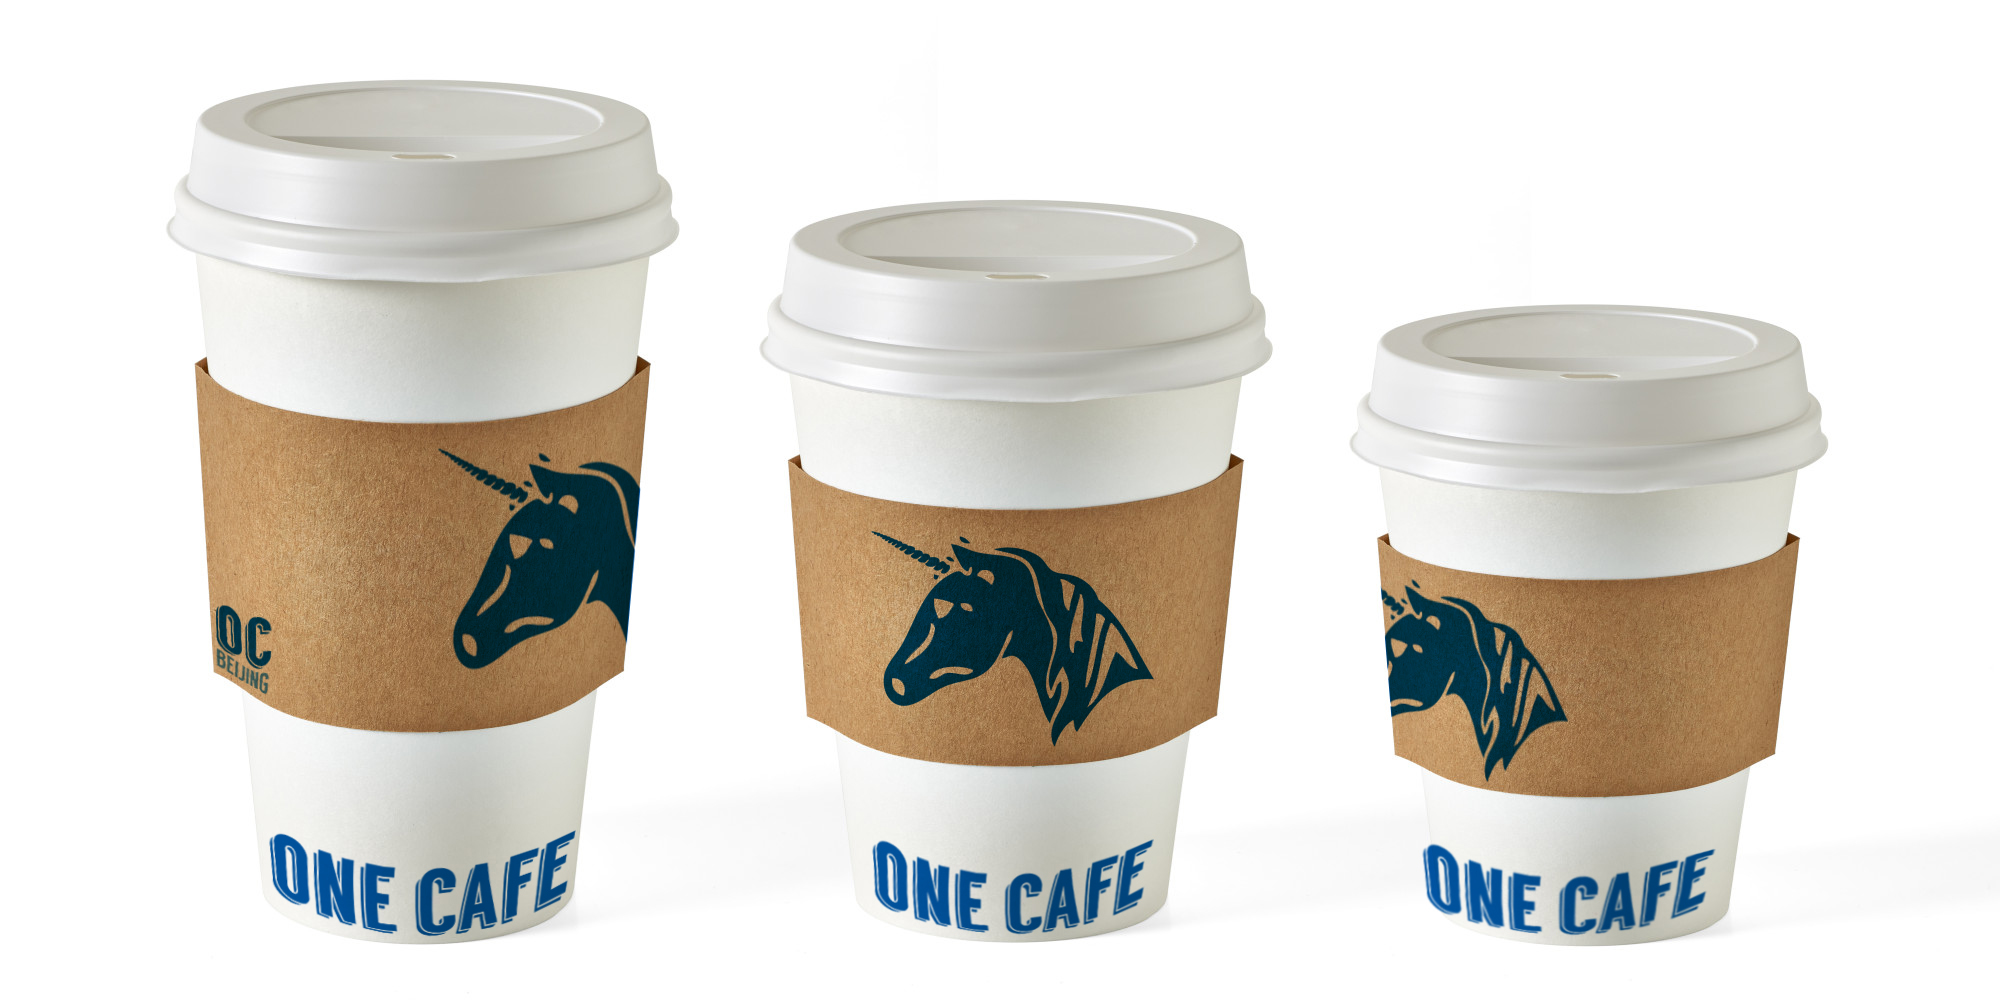 One Cafe To Go Cups